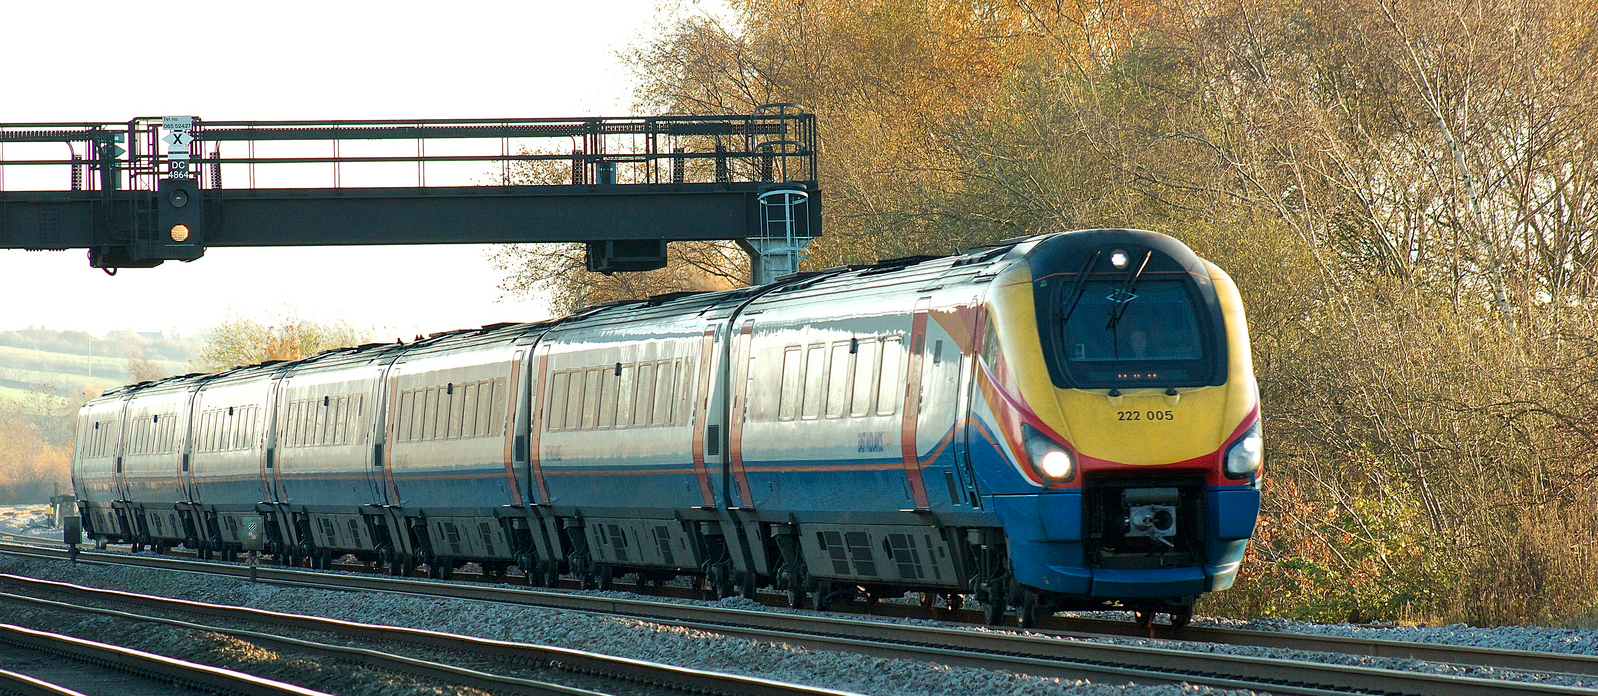 The Midland Mainline has been upgraded to allow running at 125mph. EMT Meridian 222005. Image credit: Martyn-Ahoy on Flickr.